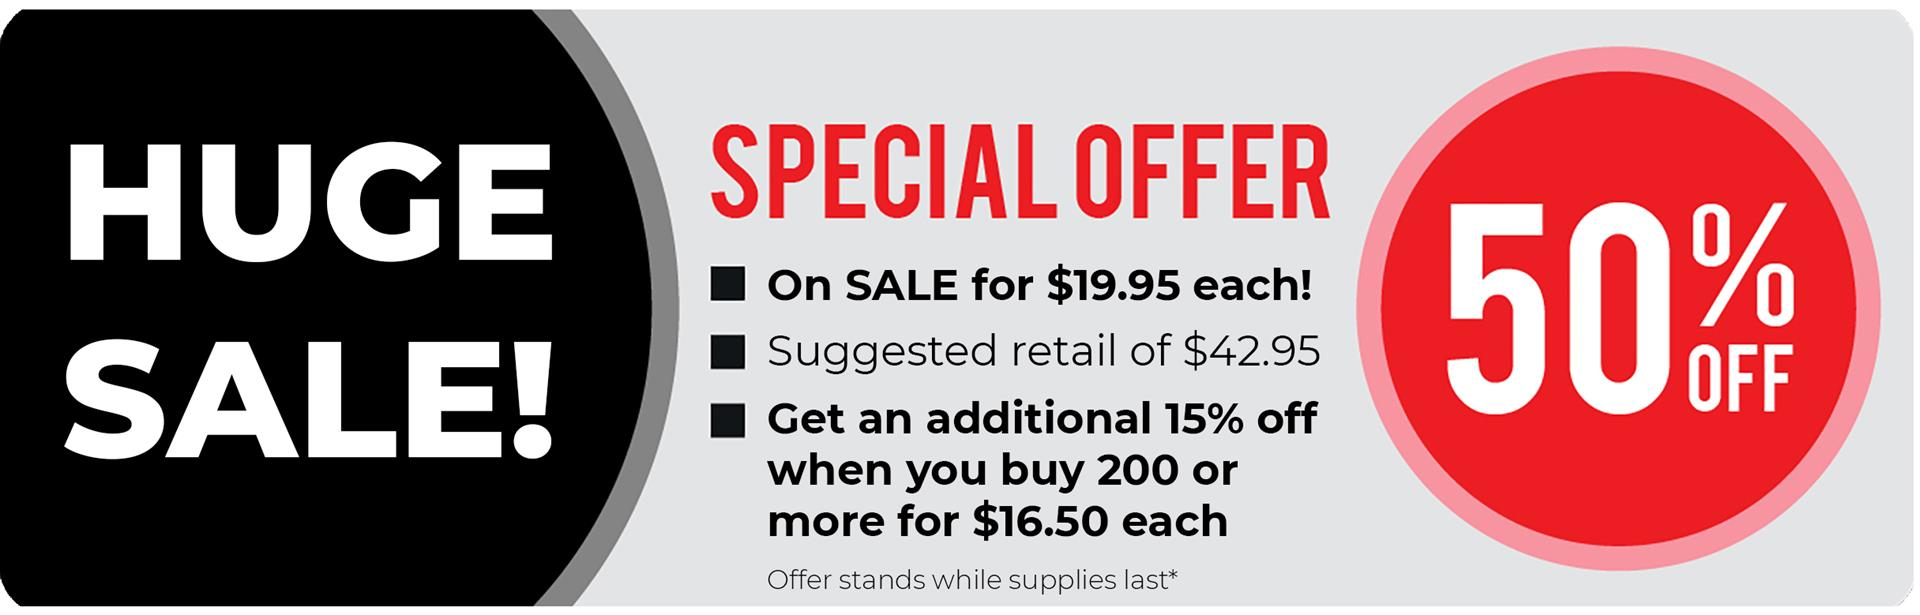 Special Offer from Peerless Electronics